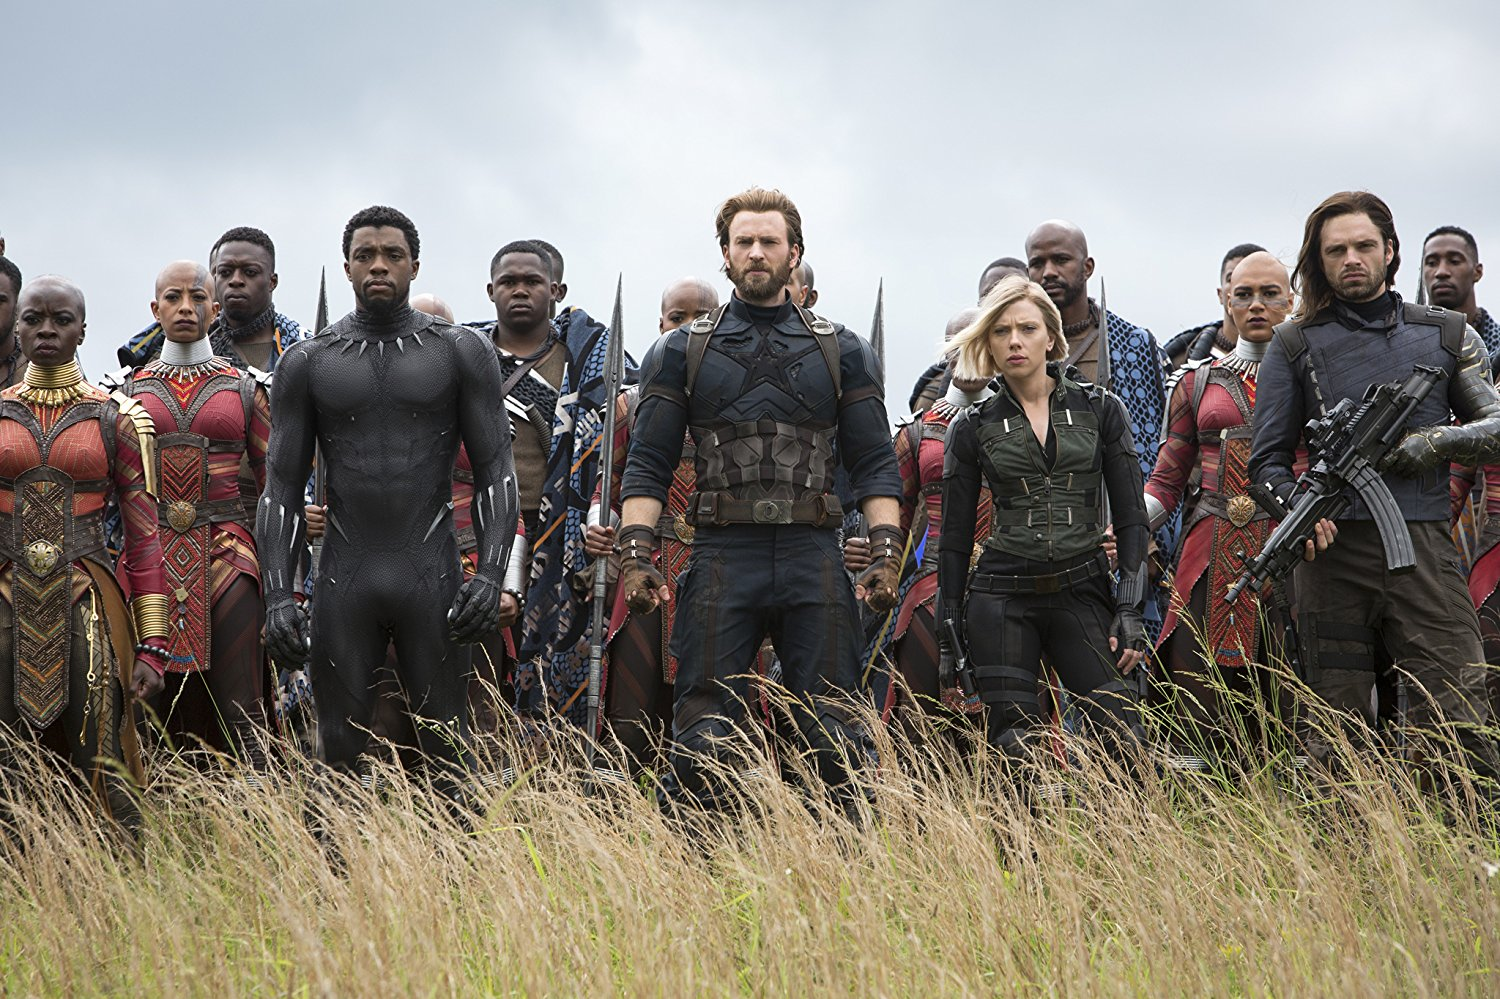 'Avengers: Infinity War' harkens back to its roots with an intense story